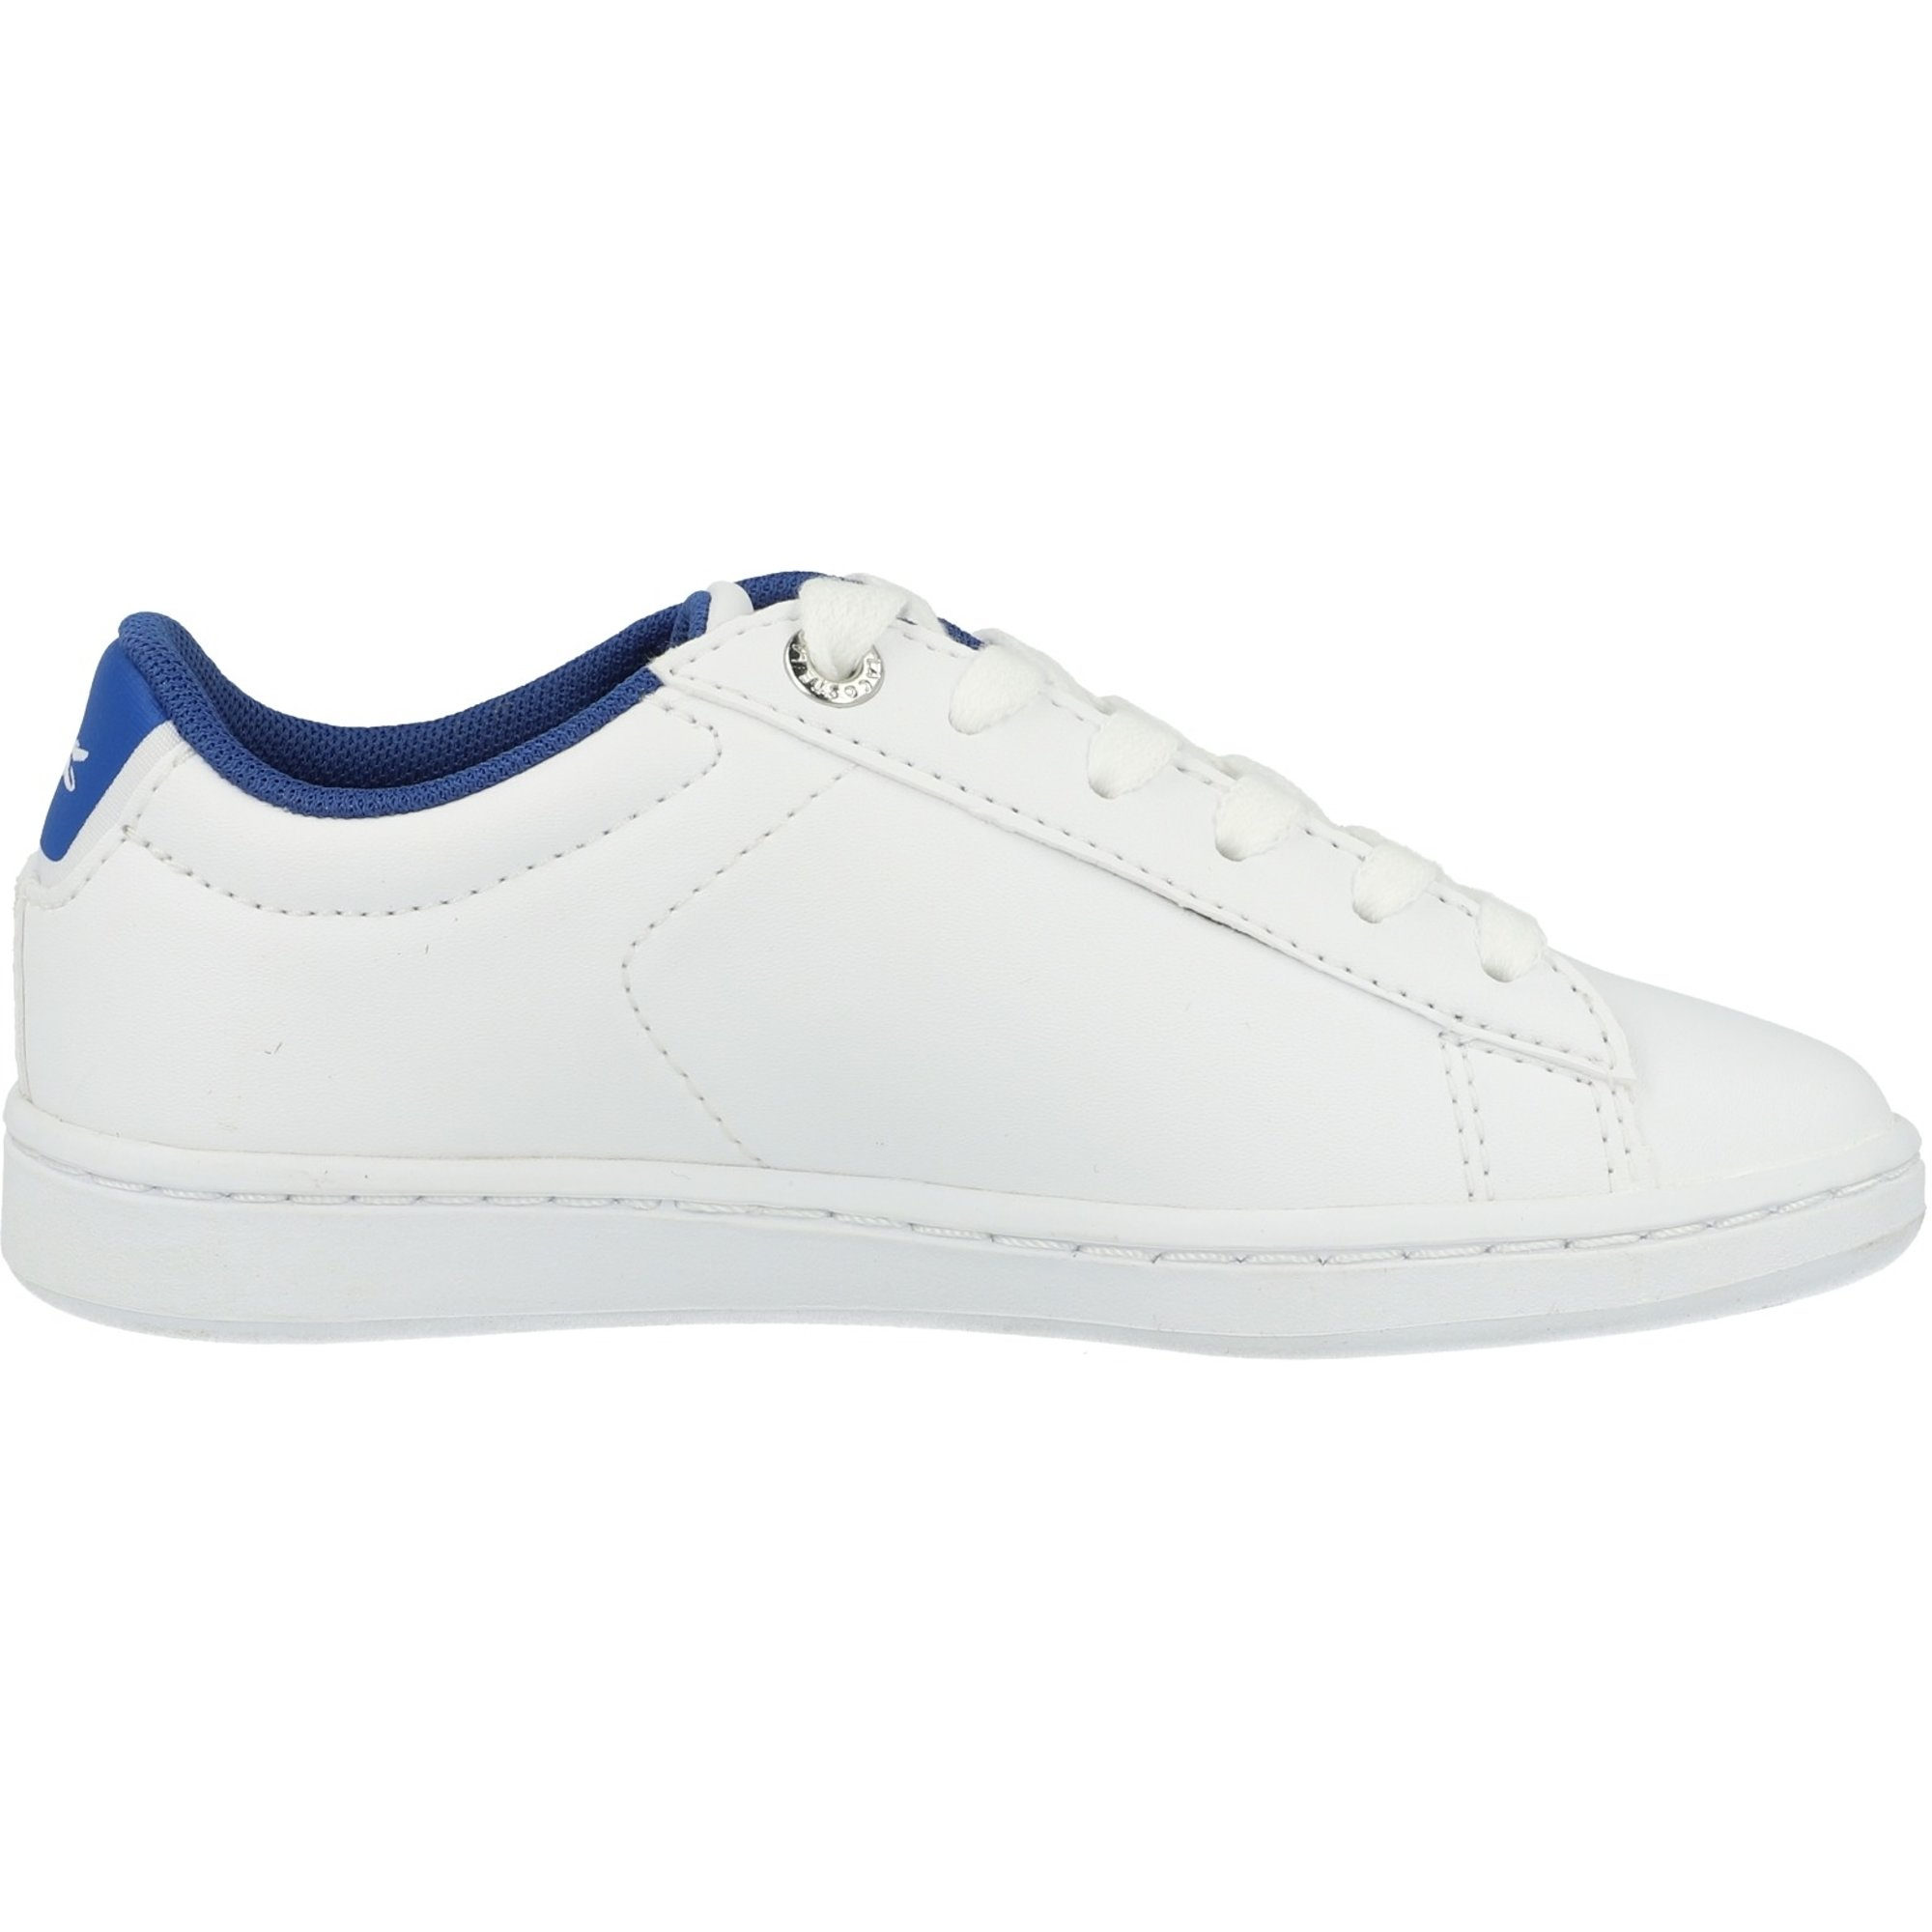 Lacoste Carnaby Evo 219 1 White/Blue Synthetic